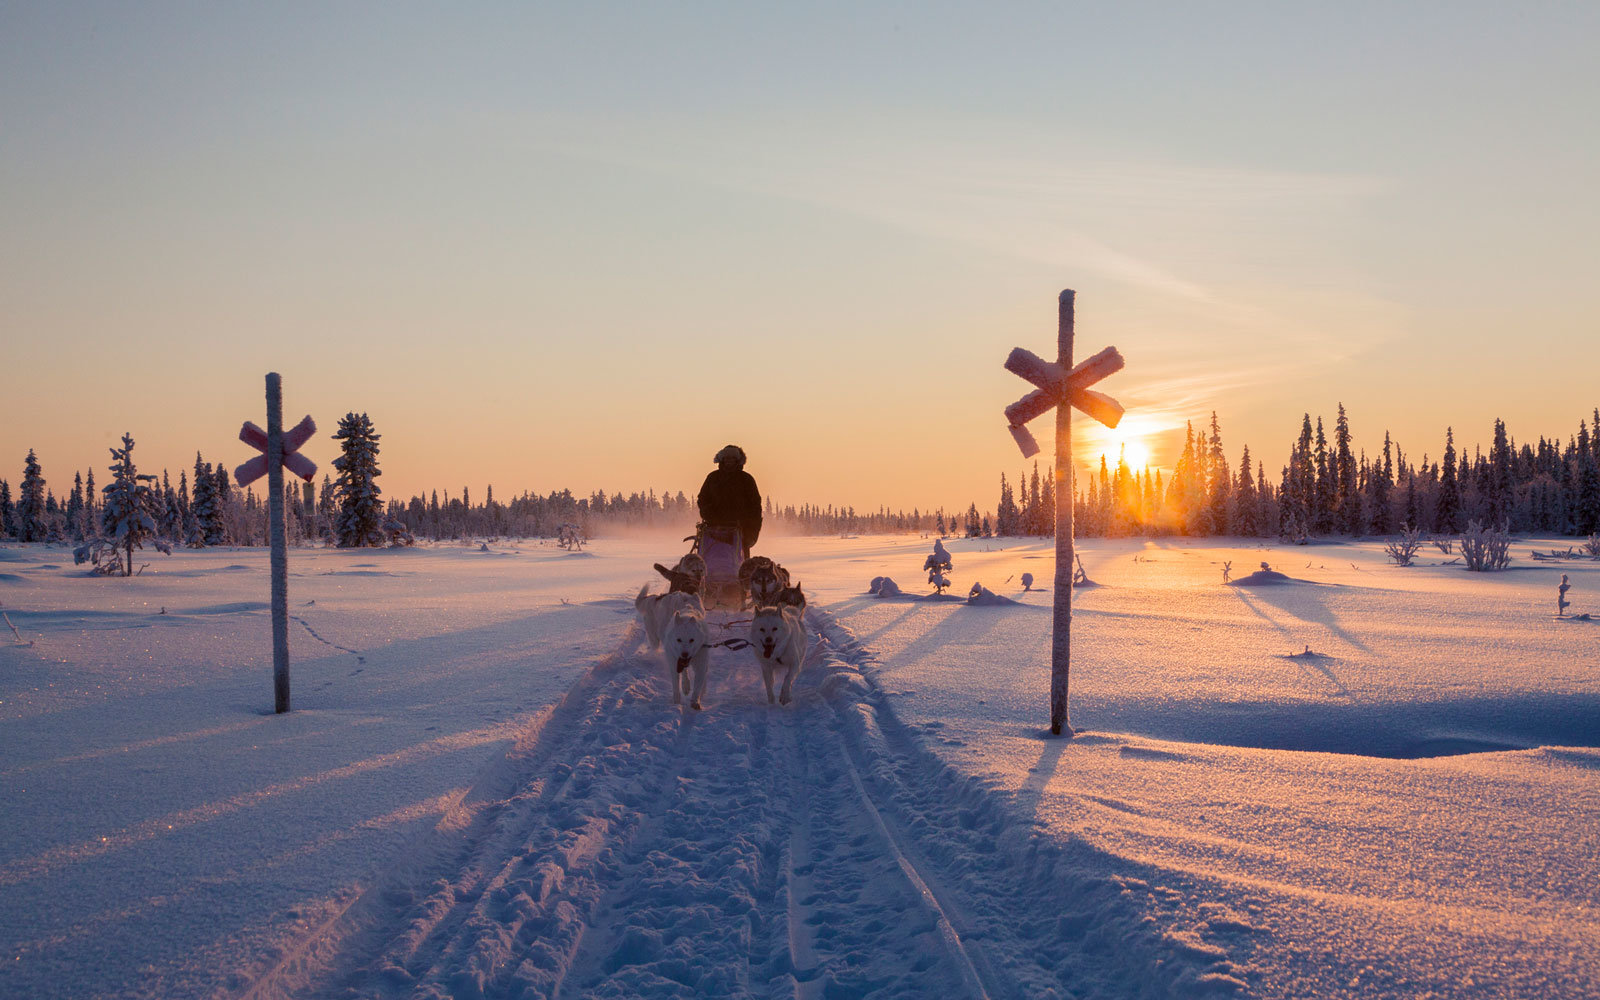 sunset and dogs in Lapland, Finland